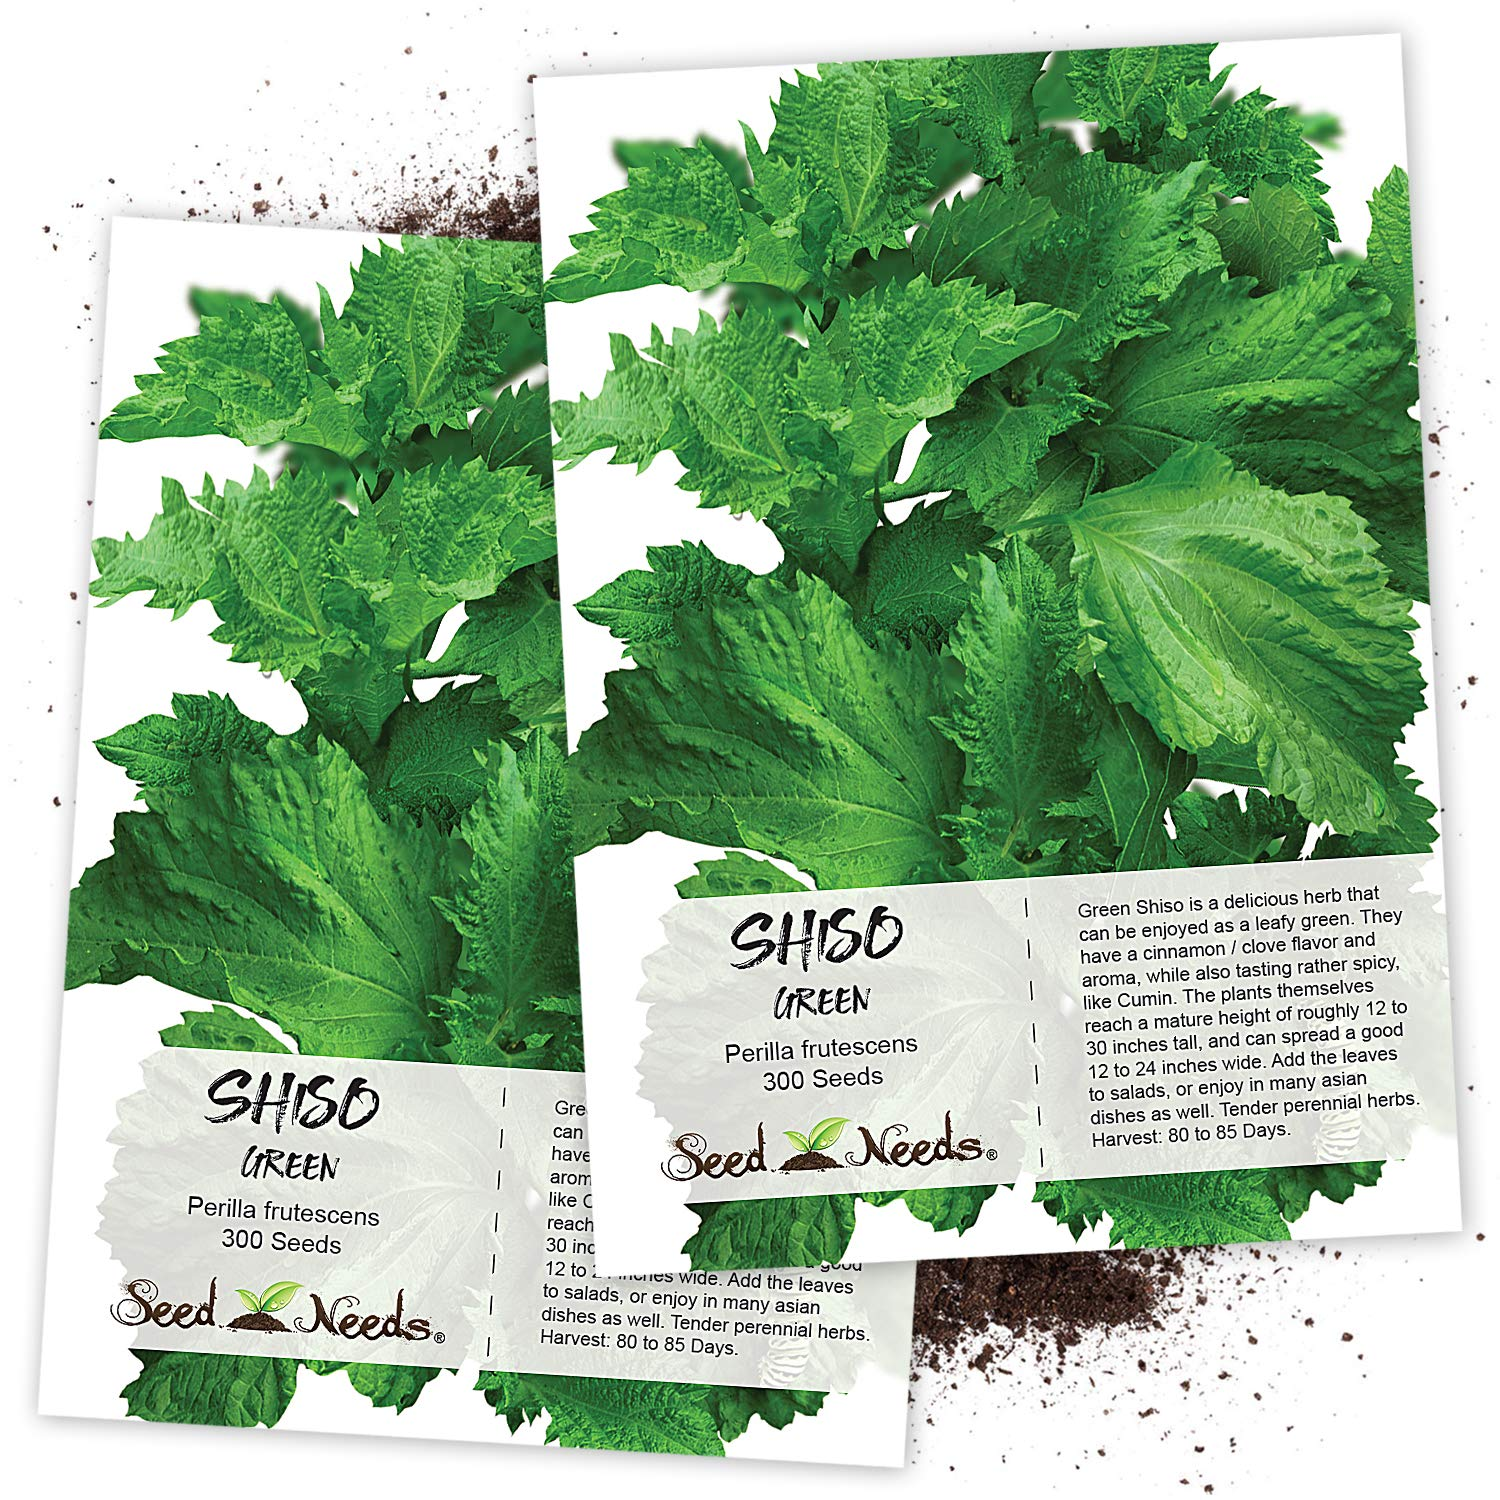 Seed Needs, Green Shiso (Perilla frutescens) Twin Pack of 300 Seeds Each Non-GMO